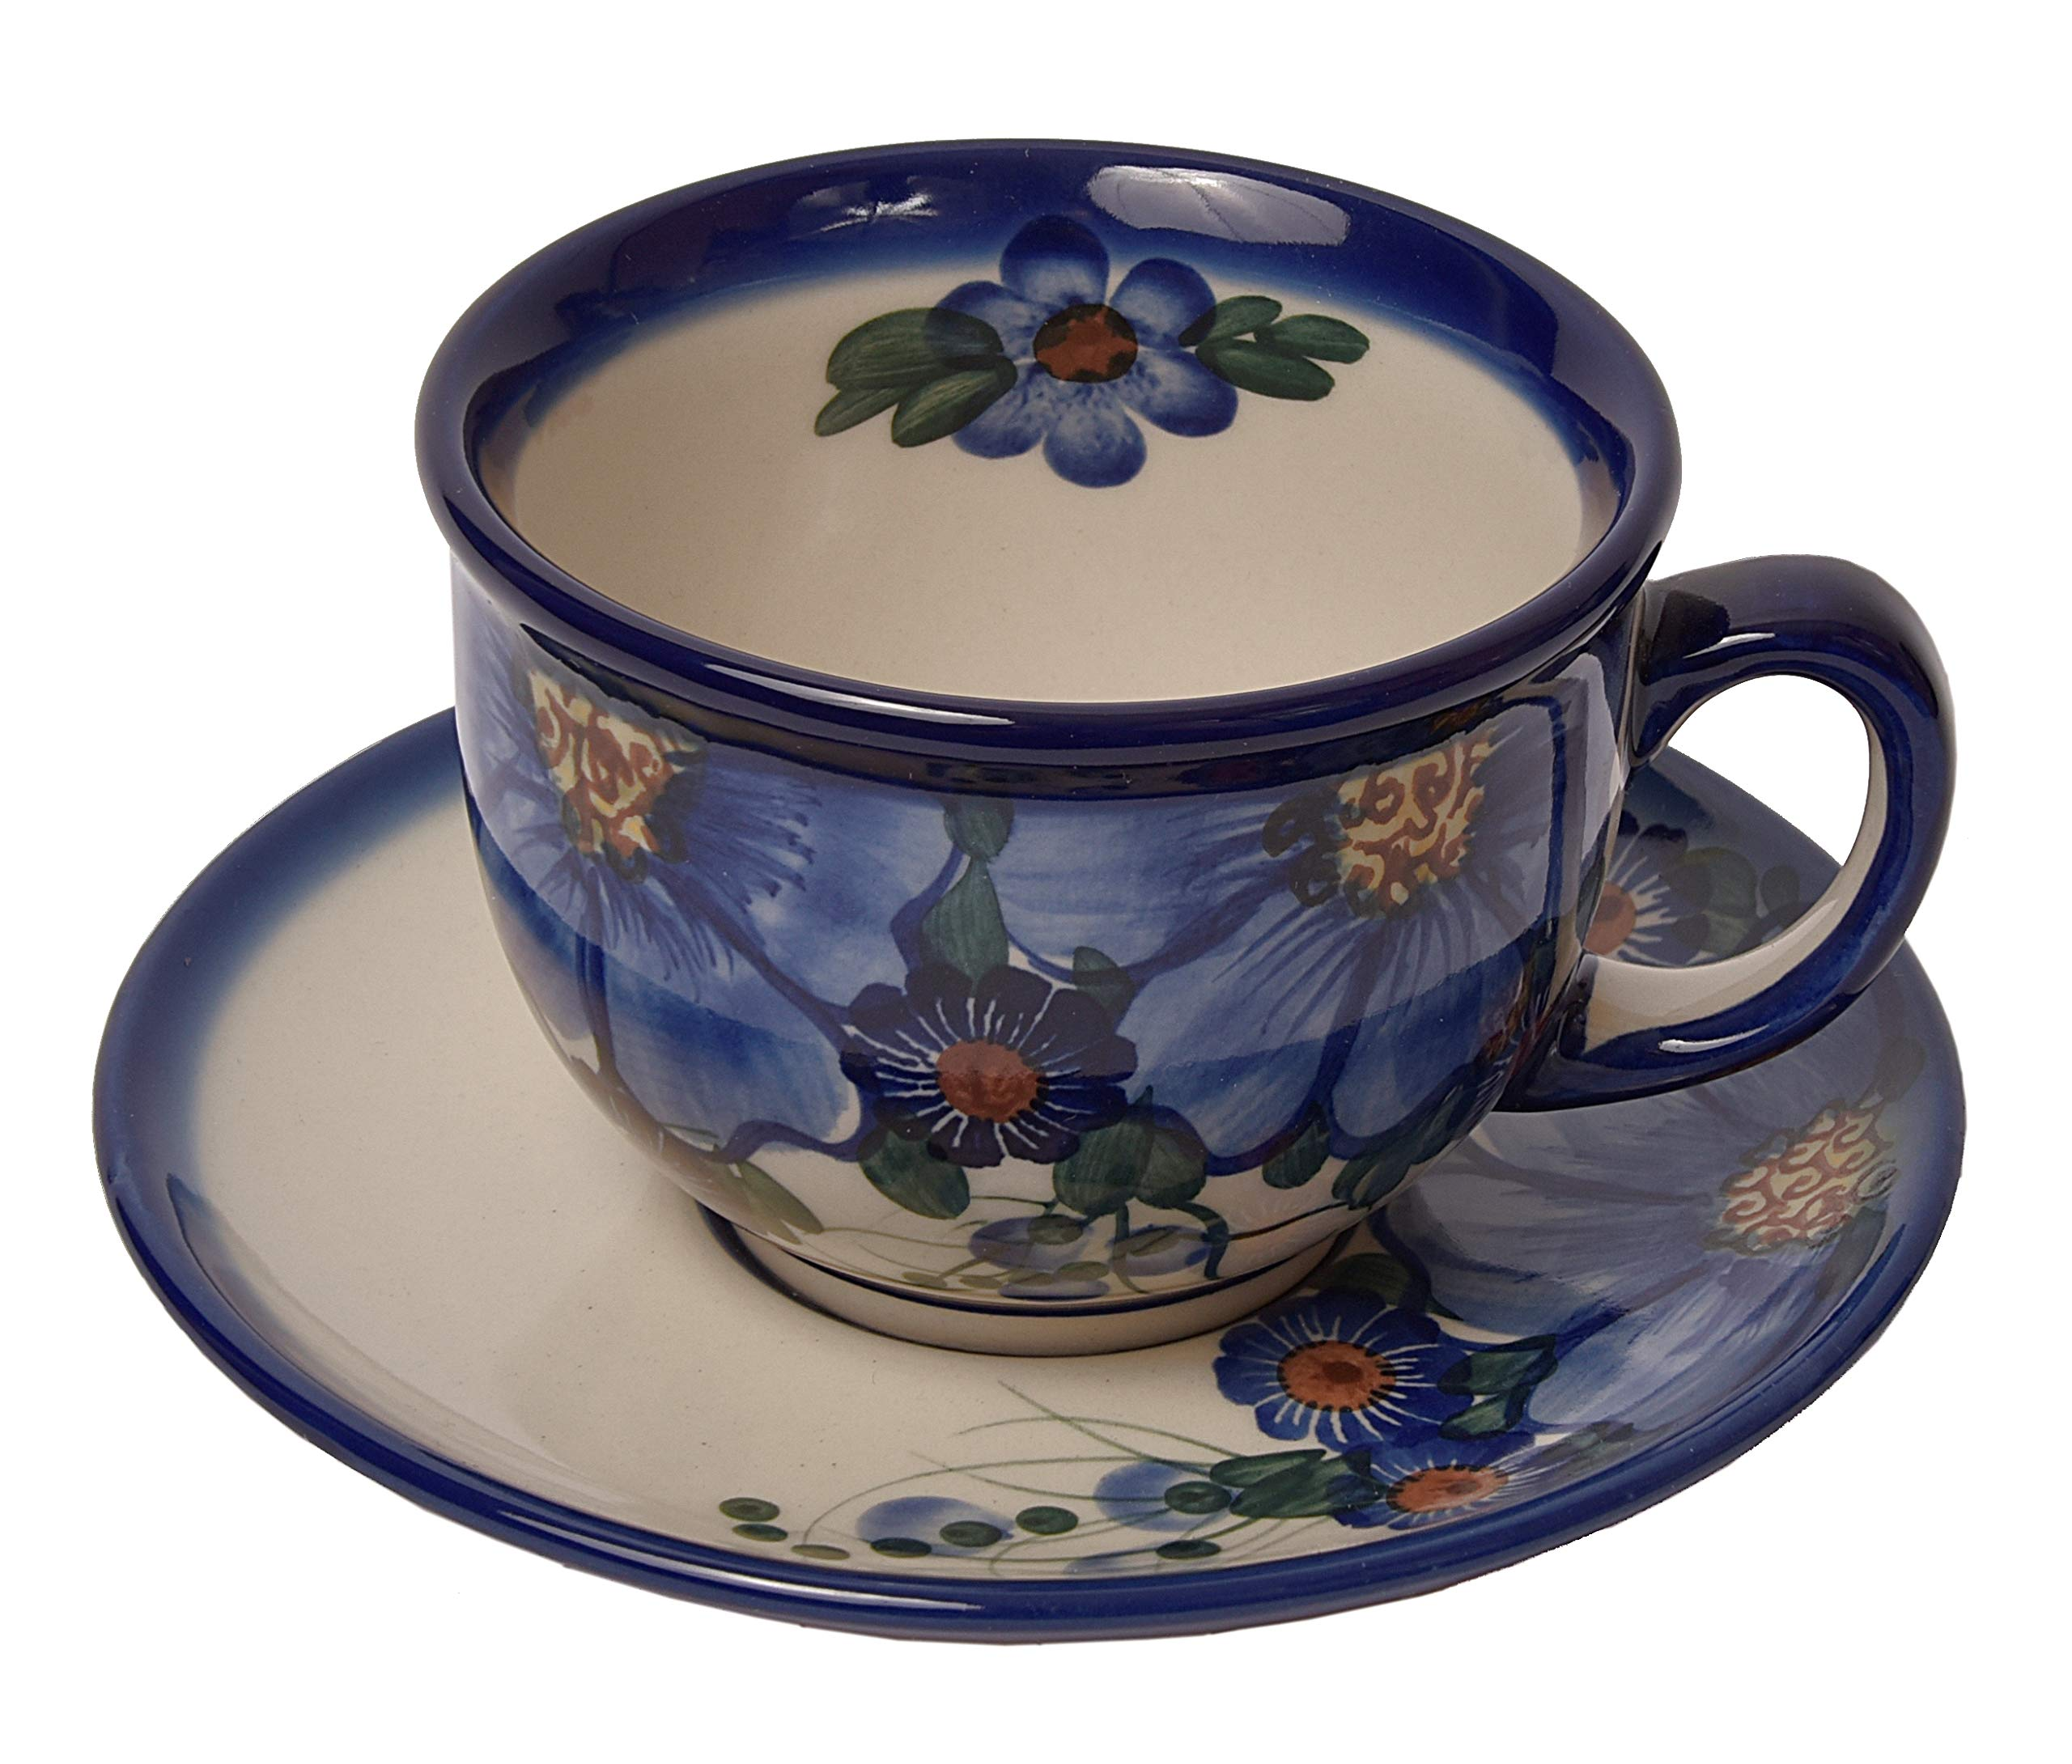 Traditional Polish Pottery, Handcrafted Ceramic Teacup and Saucer 210ml, Boleslawiec Style Pattern, F.101.Passion